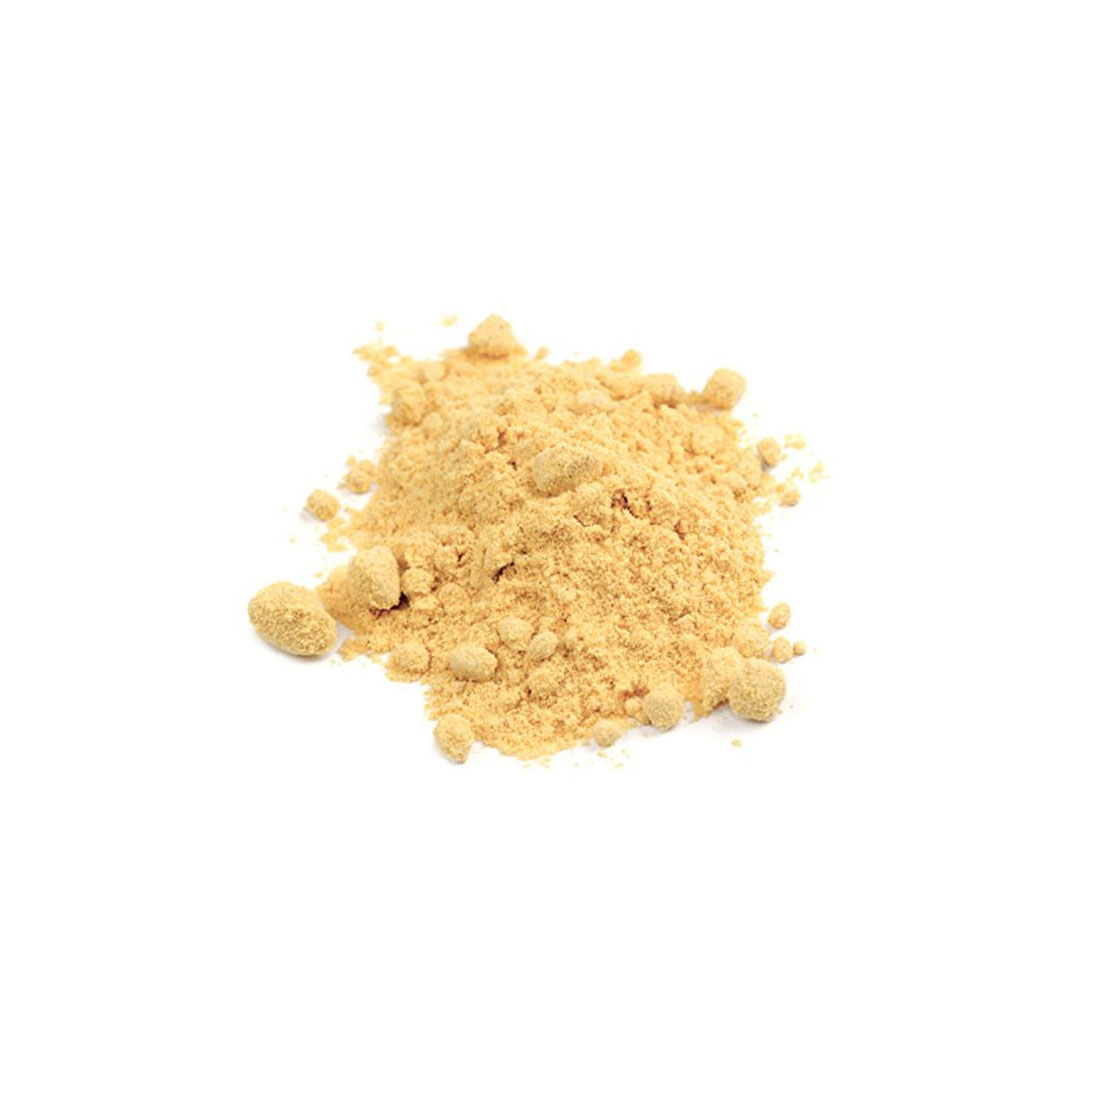 Organic Whole Egg Powder